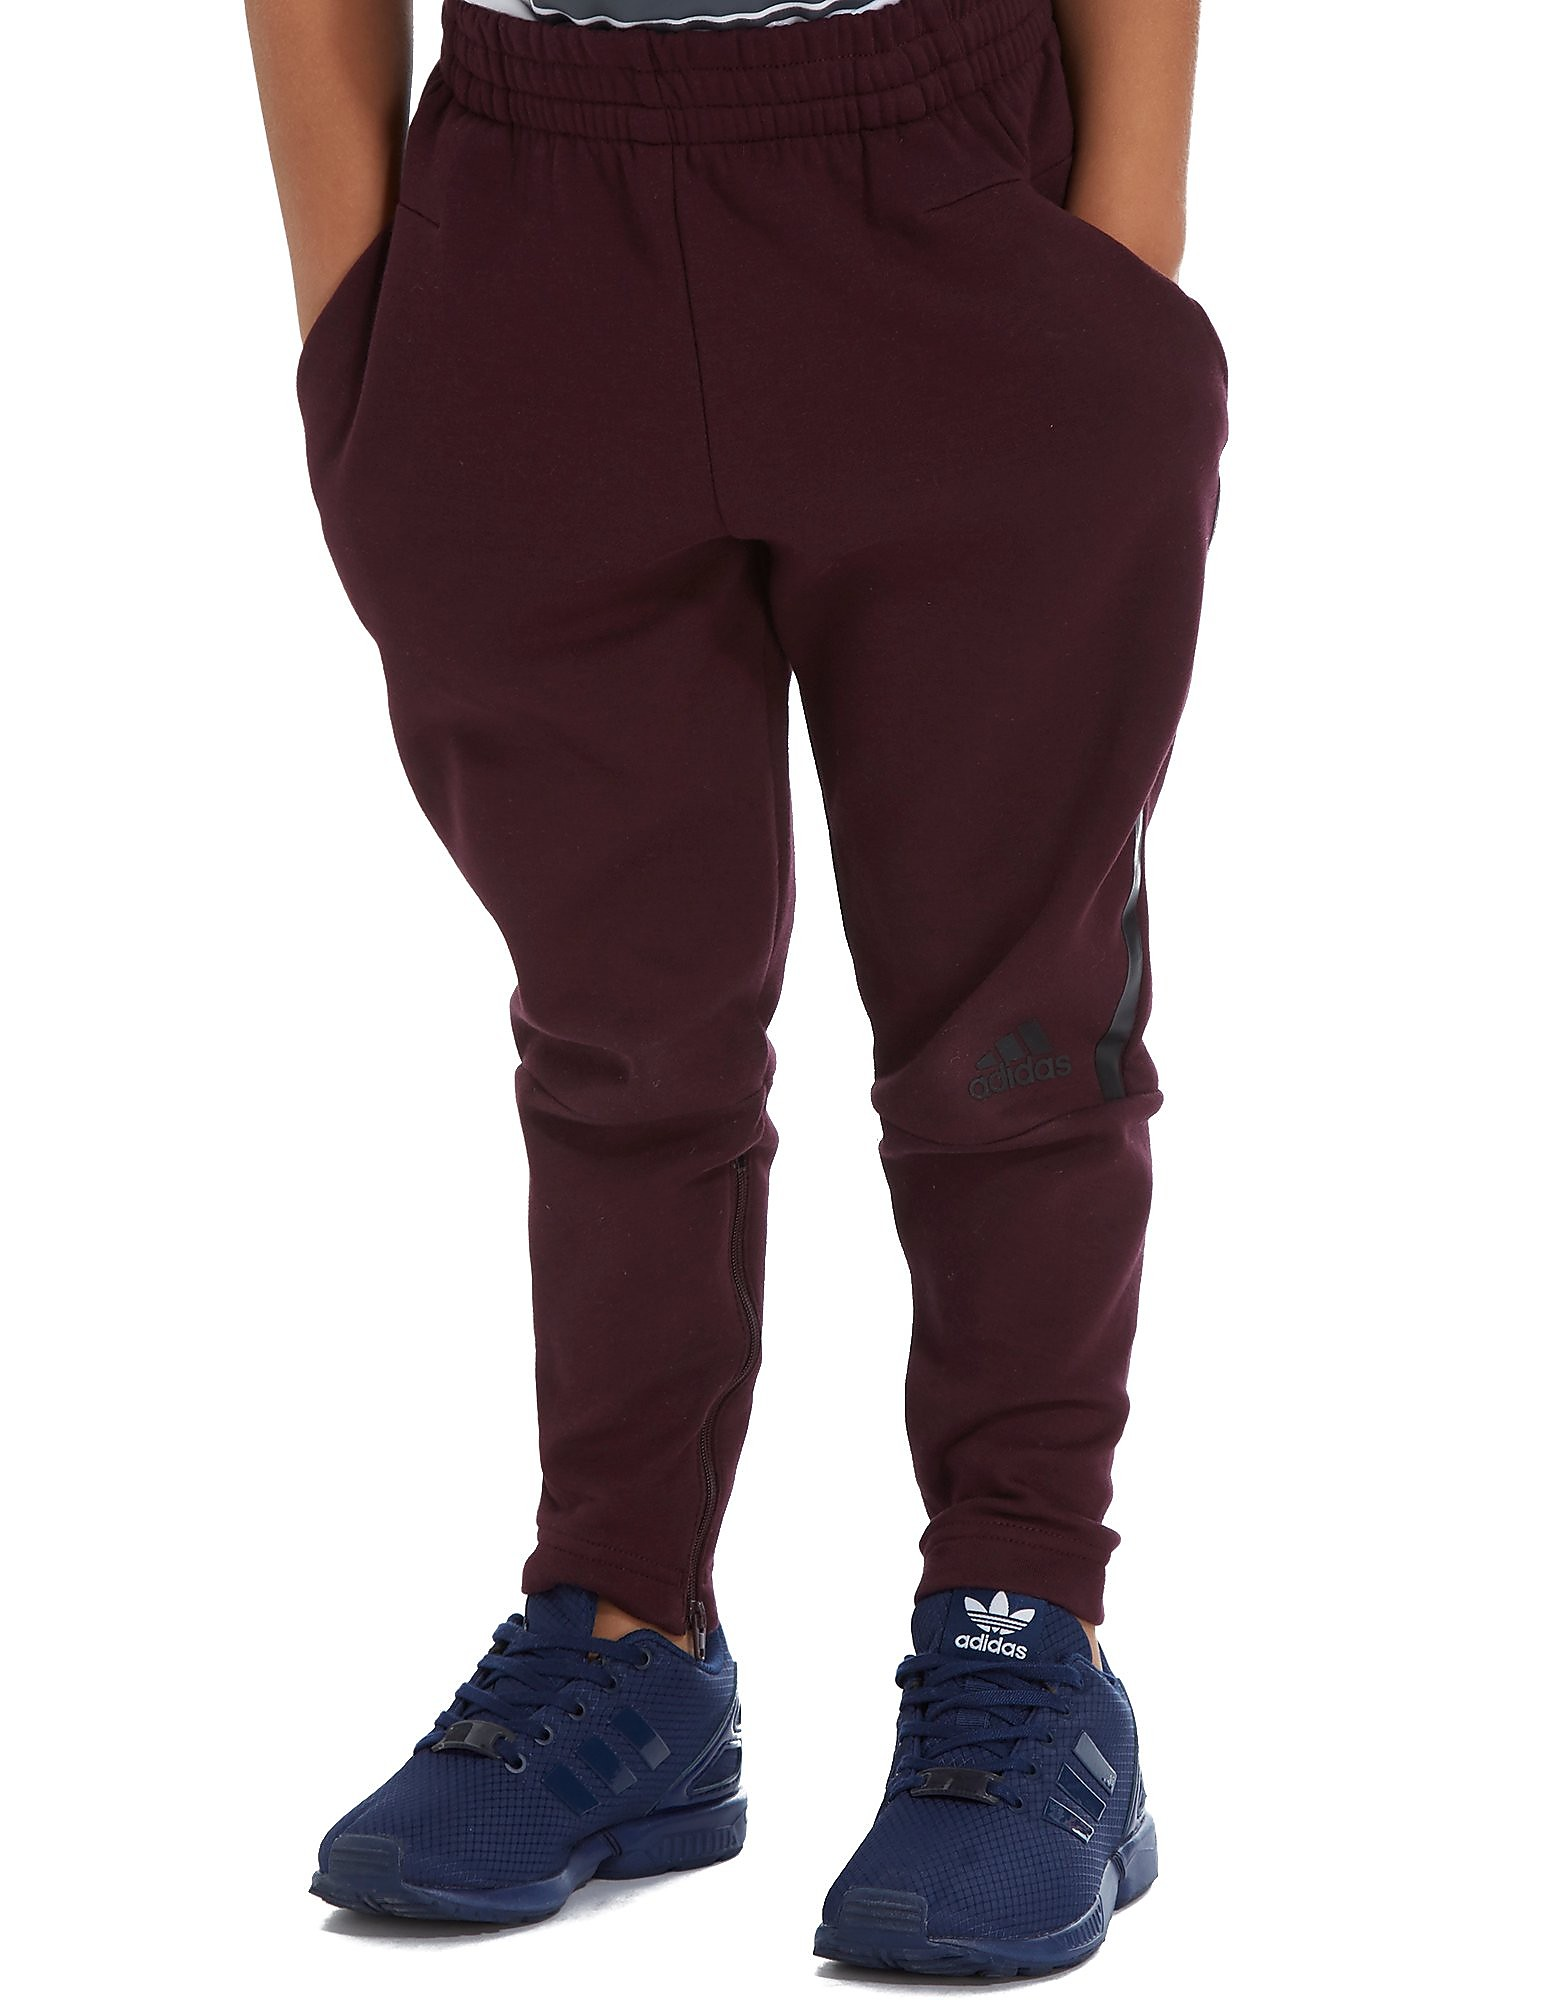 adidas Z.N.E. Pants Children